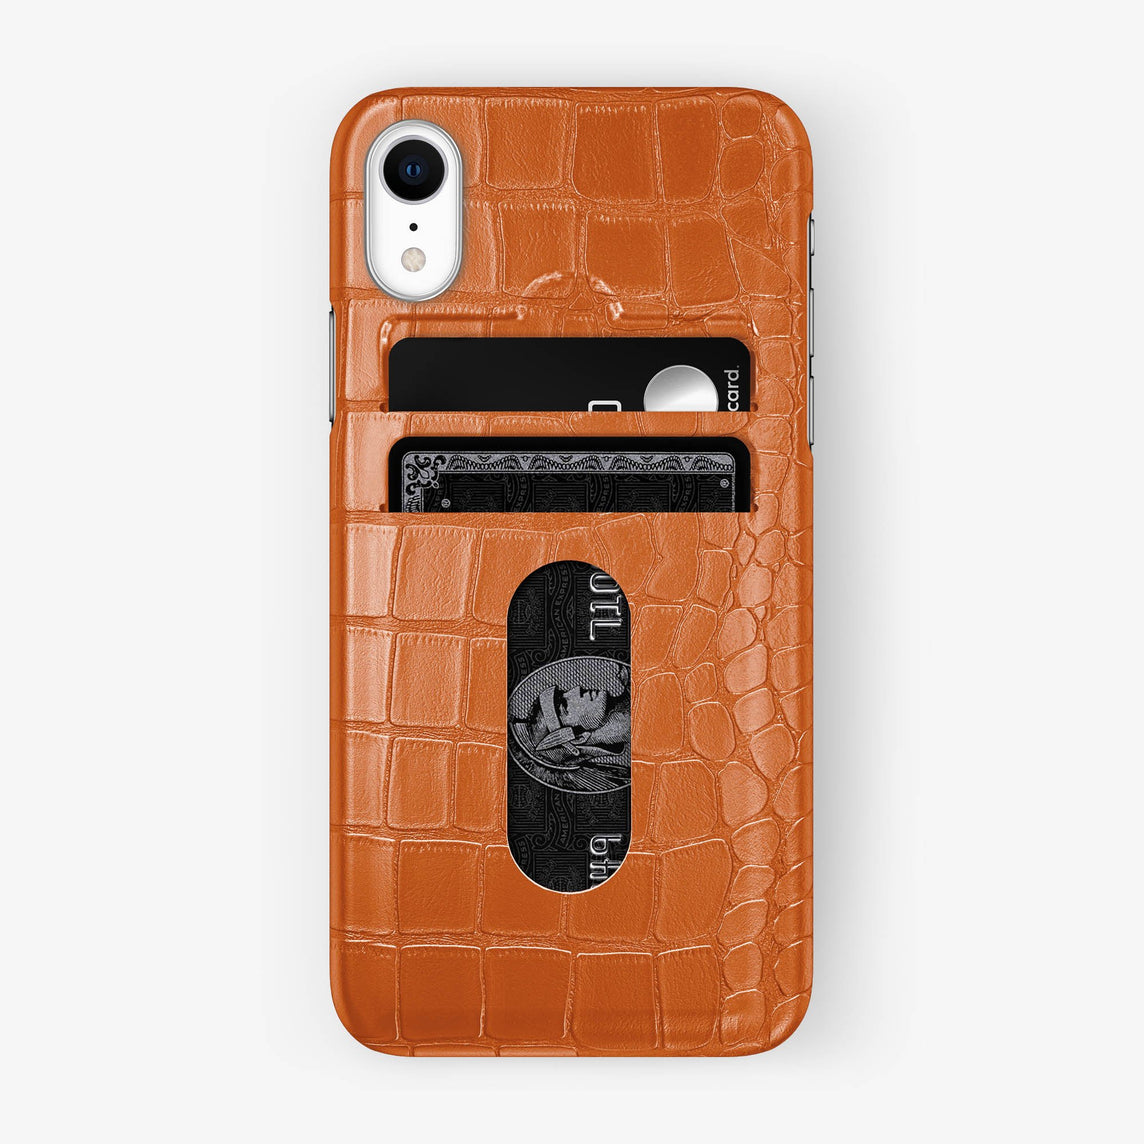 Alligator [iPhone Card Holder Case] [model:iphone-xr-case] [colour:orange] [finishing:stainless-steel]